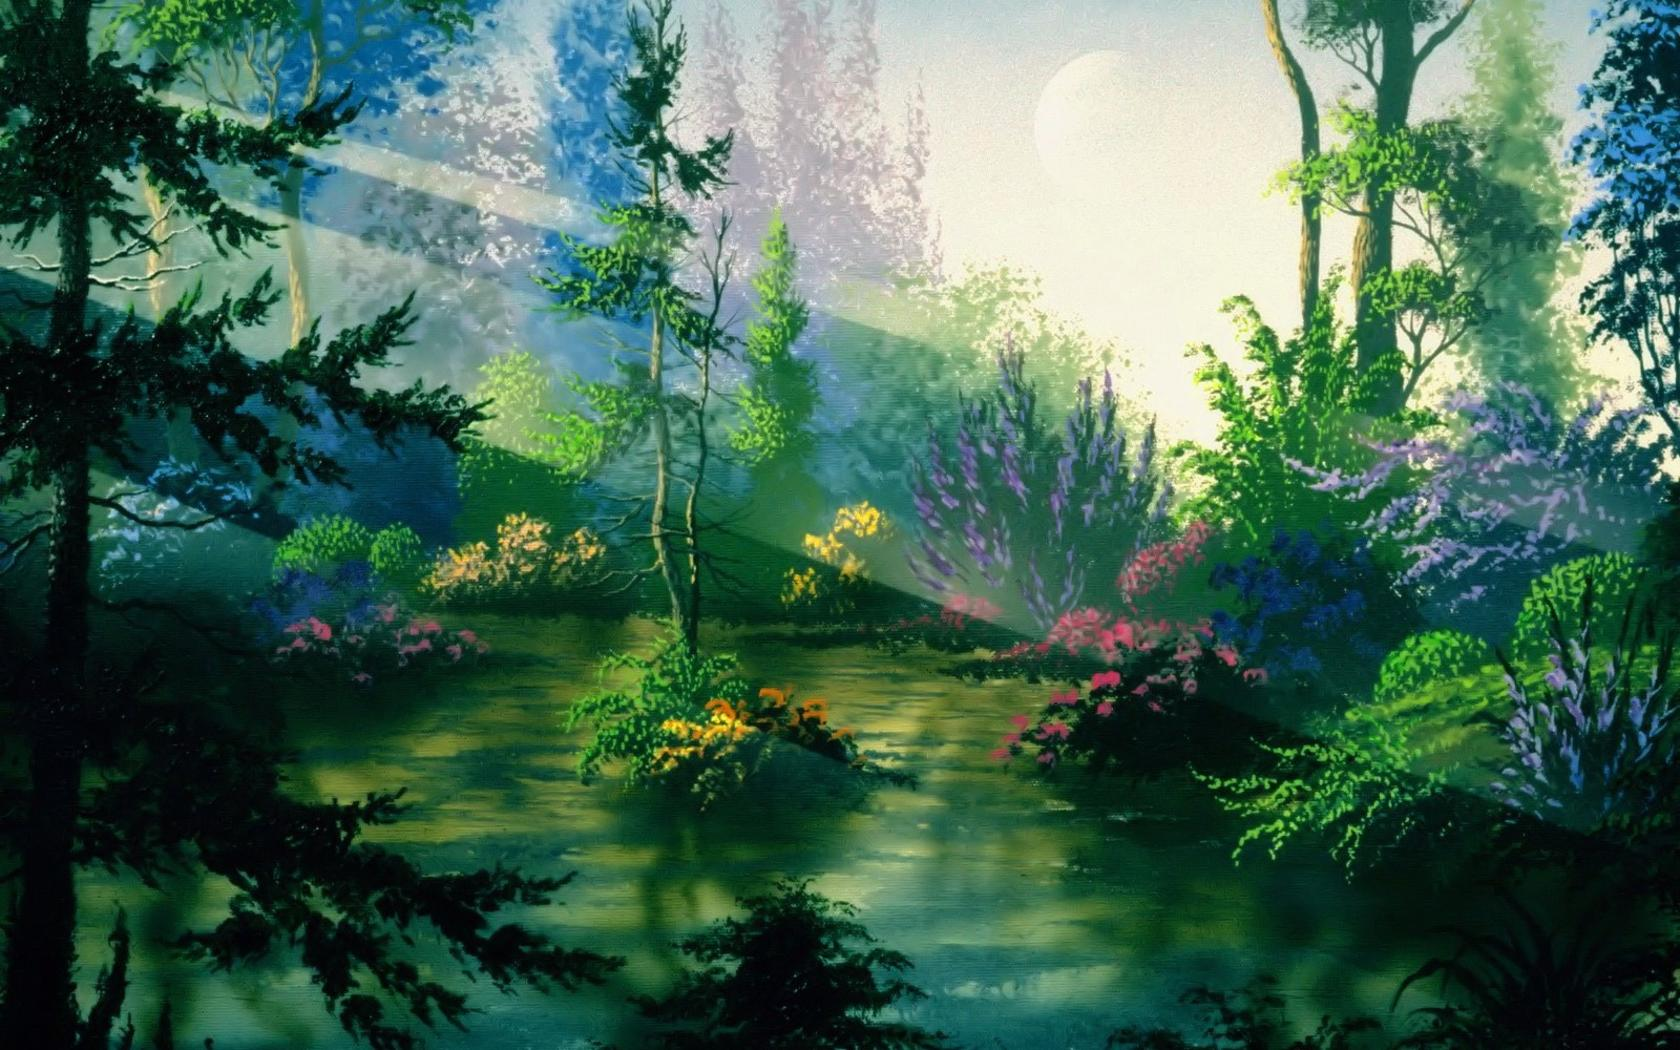 High Definition Wallpapers Screen Wallpaper Fantasy Scenery Sarel 1680x1050